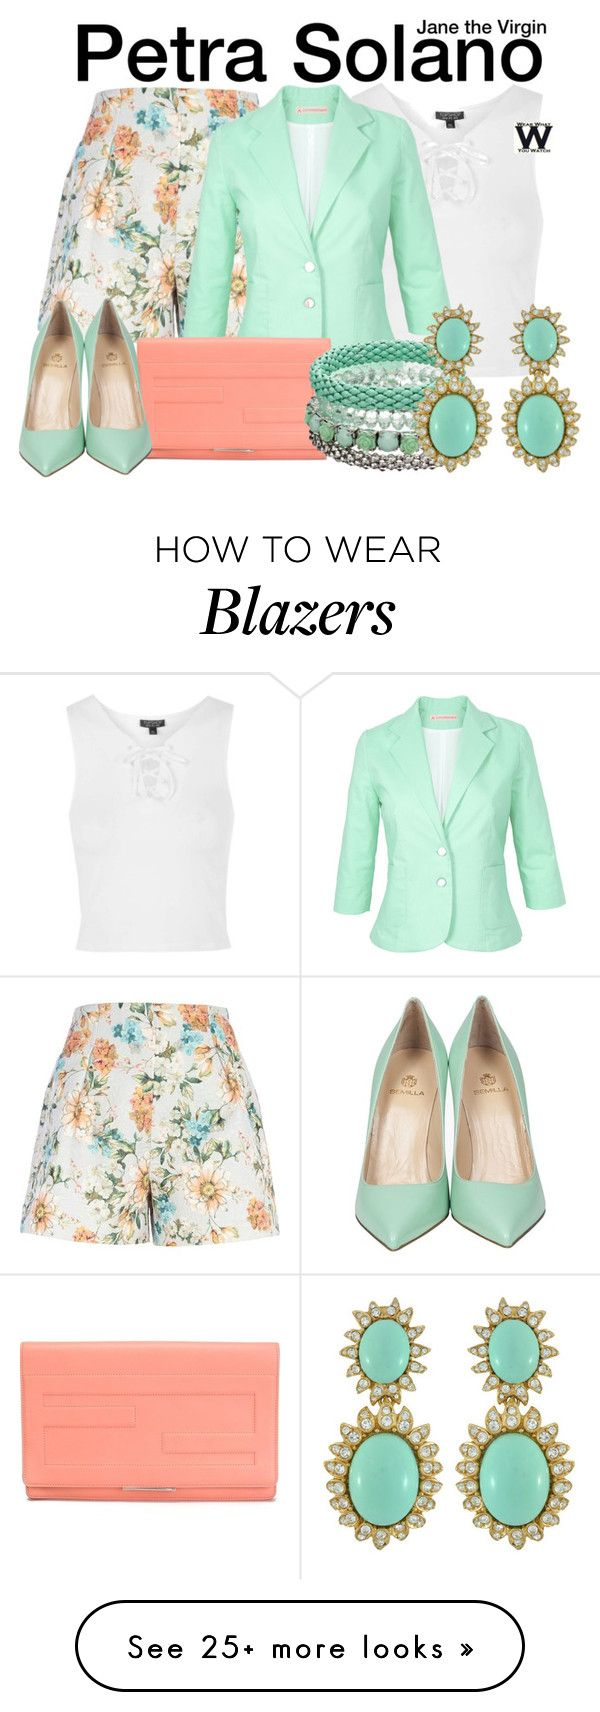 """""""Jane the Virgin"""" by wearwhatyouwatch on Polyvore featuring Topshop, River Island, Fendi, Semilla, Mudd, Ciner, television and wearwhatyouwatch"""